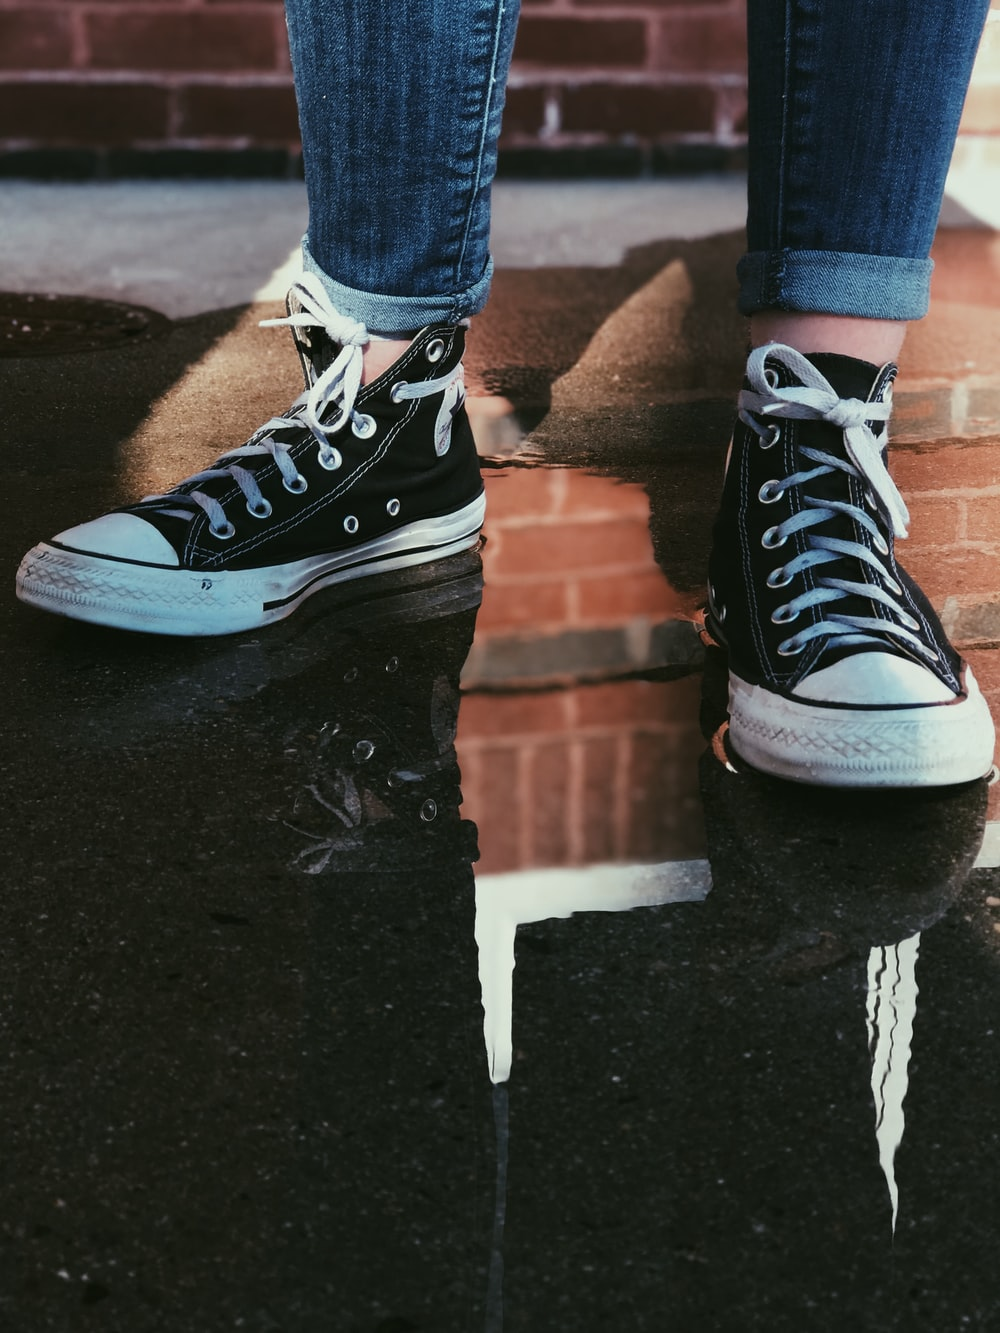 998d56b2269553 person wearing black high-top sneakers